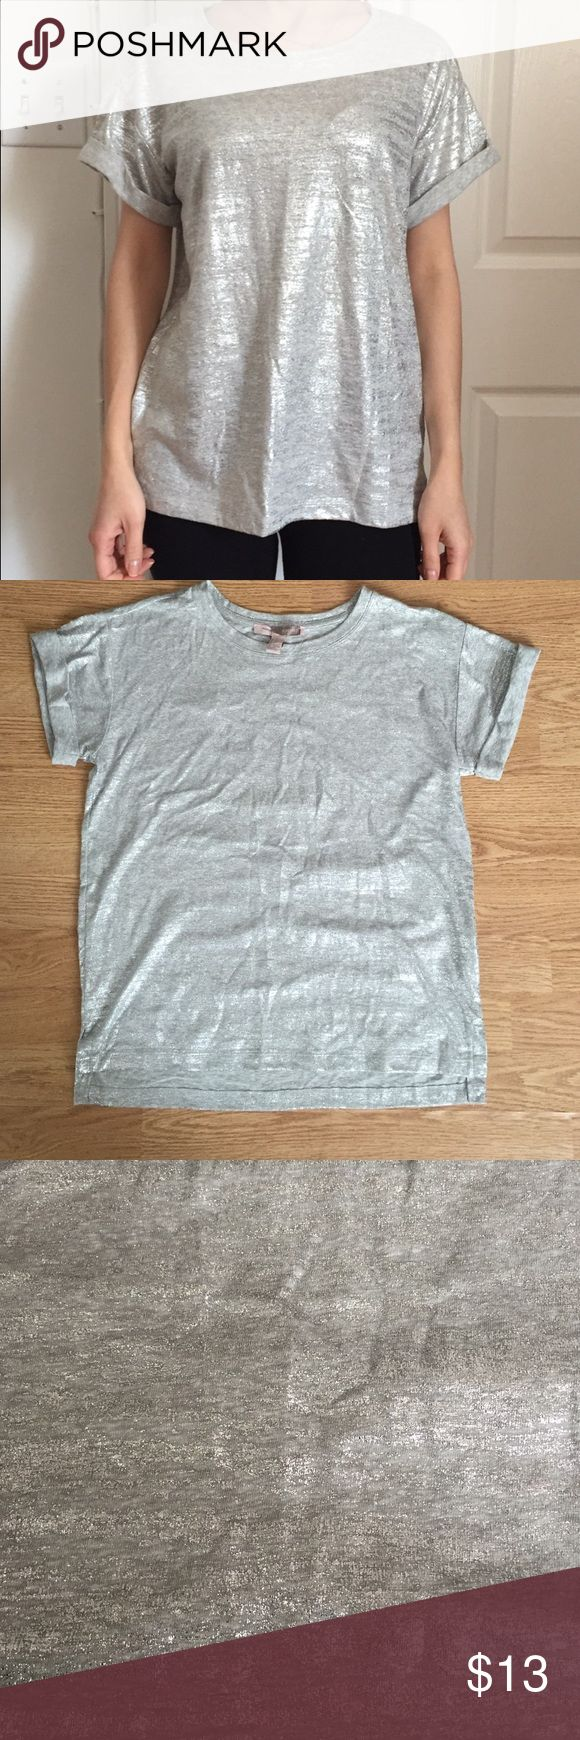 Silver top Silver short sleeve top. New, never been worn. Forever 21 Tops